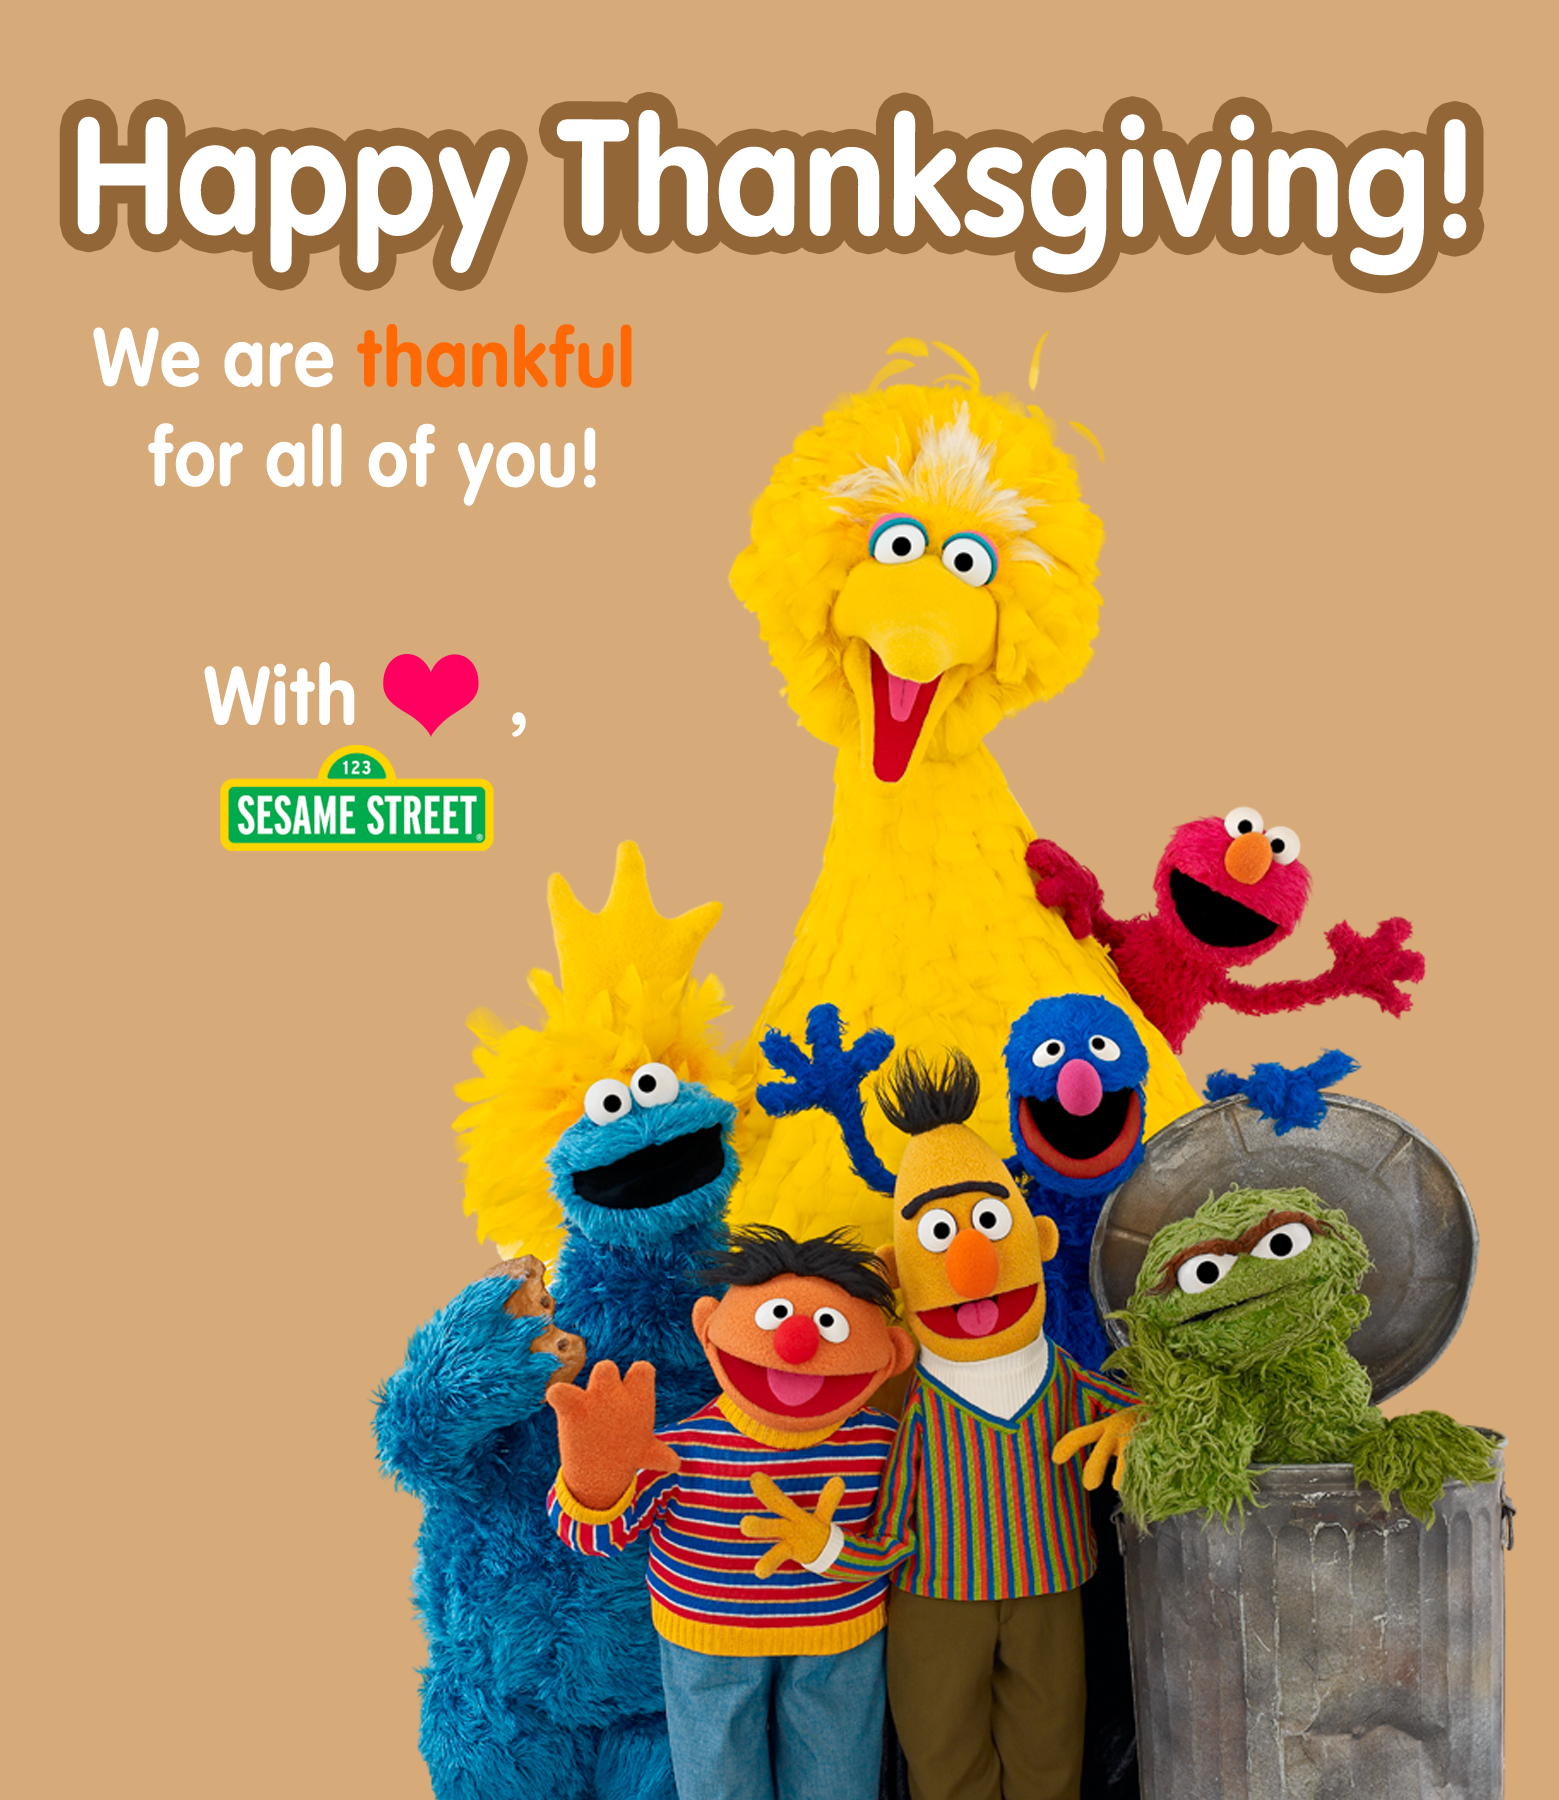 Sesame Street wishes everyone a happy Thanksgiving! We are surely ...